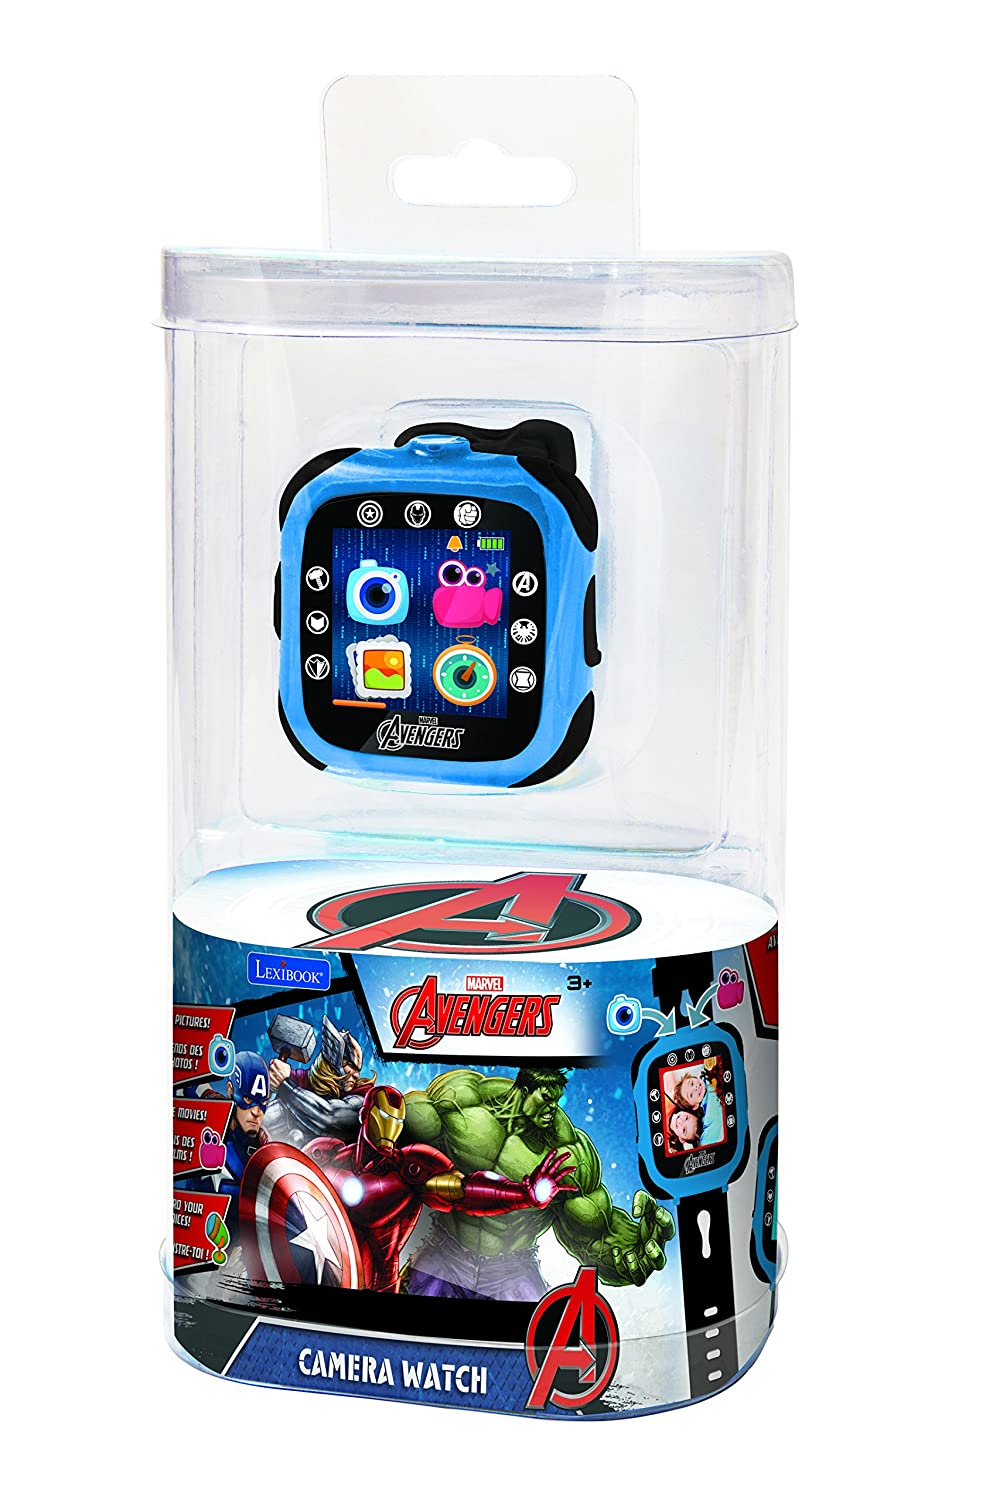 Lexibook Marvel The Avengers Iron Man Camera Watch, Smartwatch with Camera,  0 3MP, Touch Screen, Rechargeable Battery, Blue/Black, DMW100AV